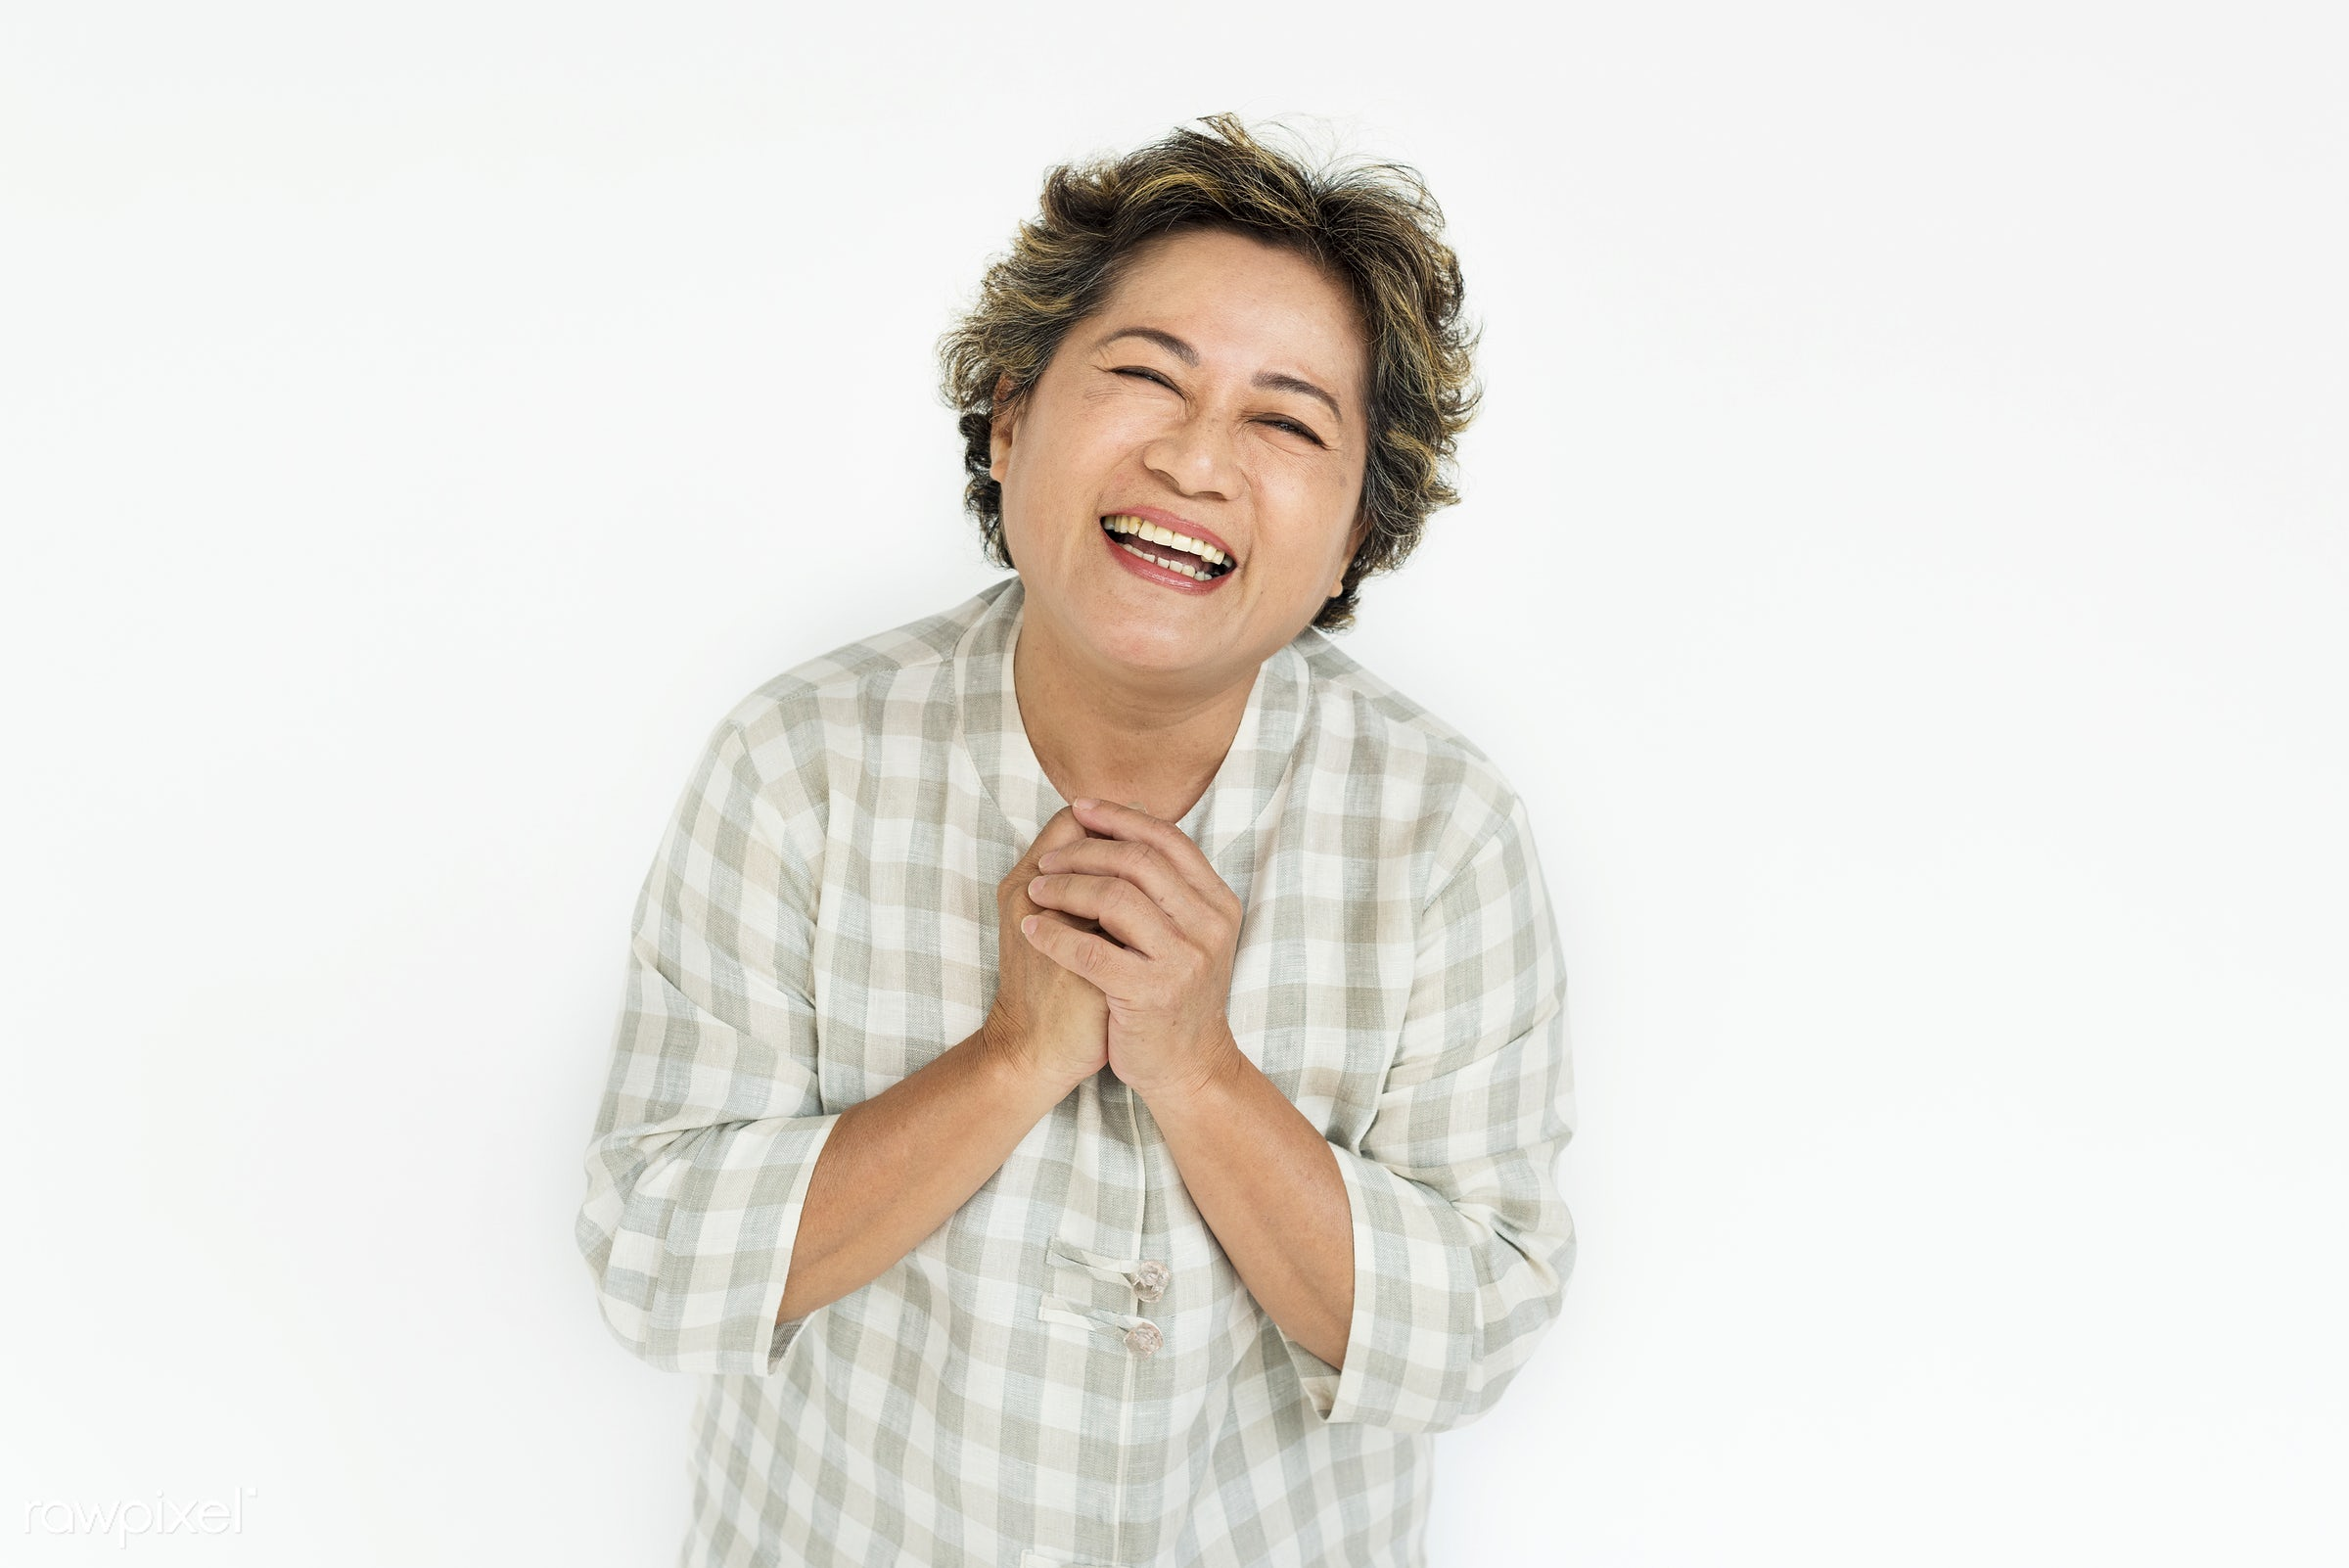 Studio portrait of an Asian woman - studio, expression, person, people, asian, woman, cheerful, smiling, isolated, white,...